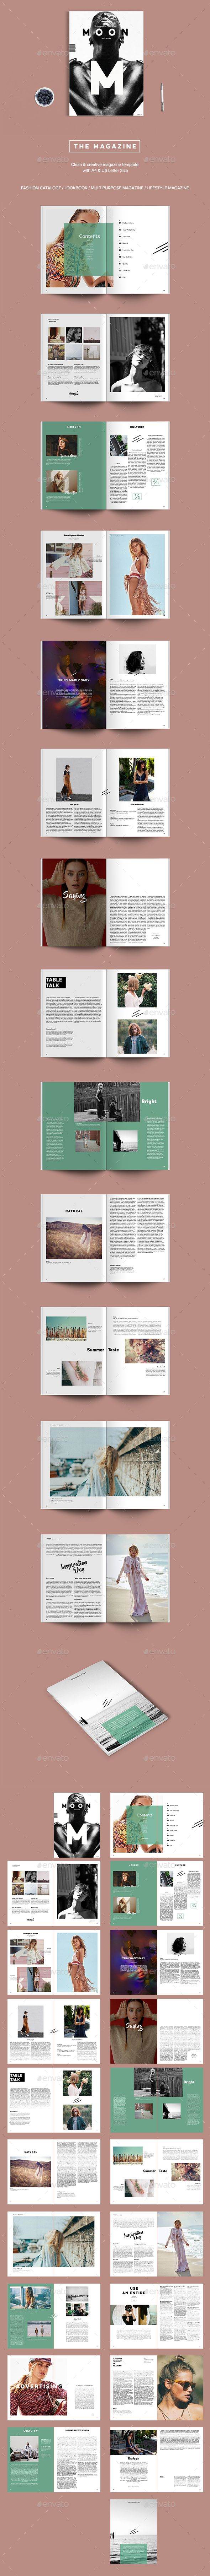 The Magazine Template InDesign INDD. Download here: https://graphicriver.net/item/the-magazine-/17520219?ref=ksioks